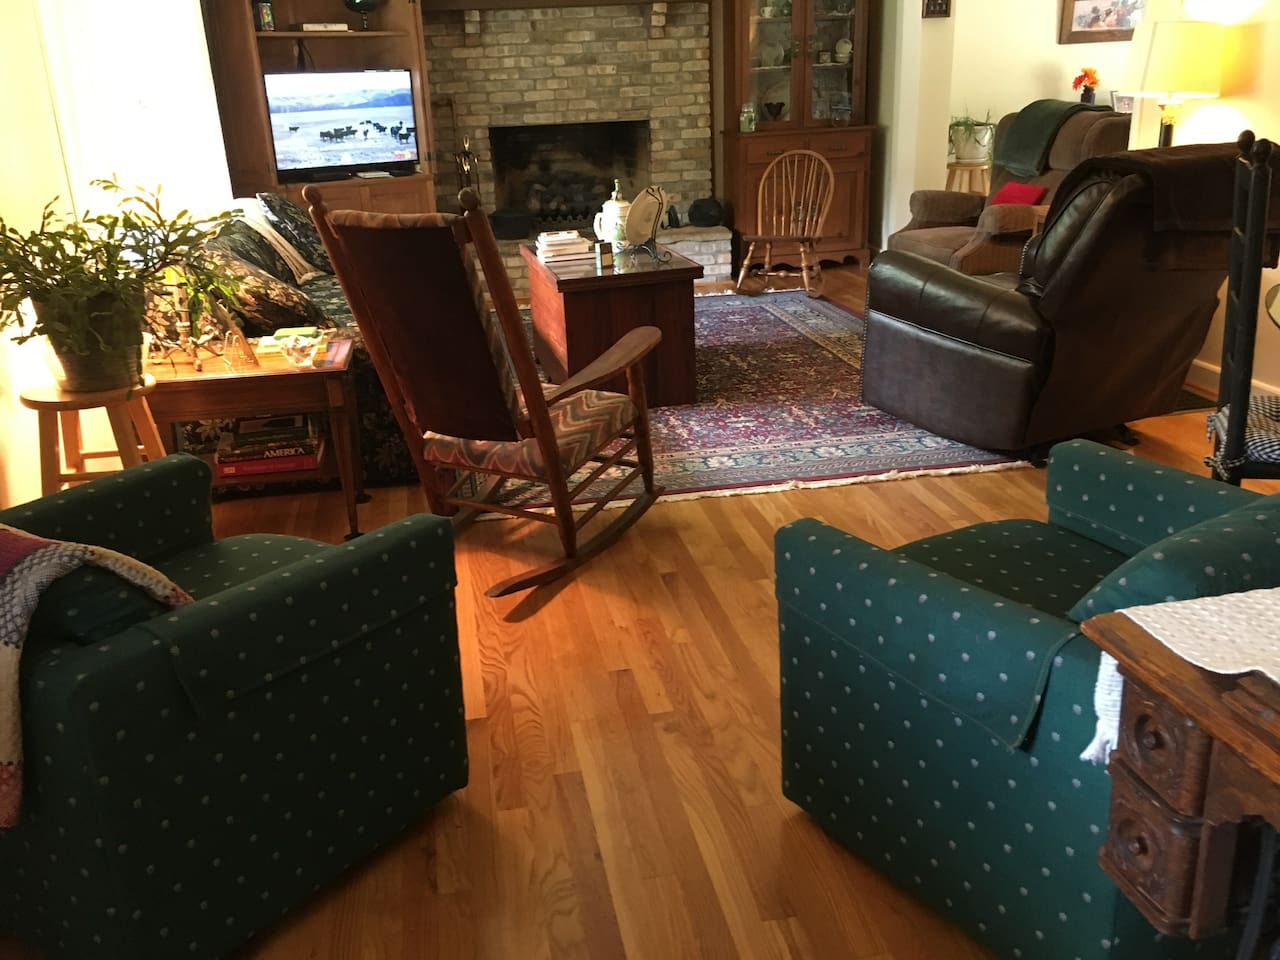 Living area with fireplace and tv